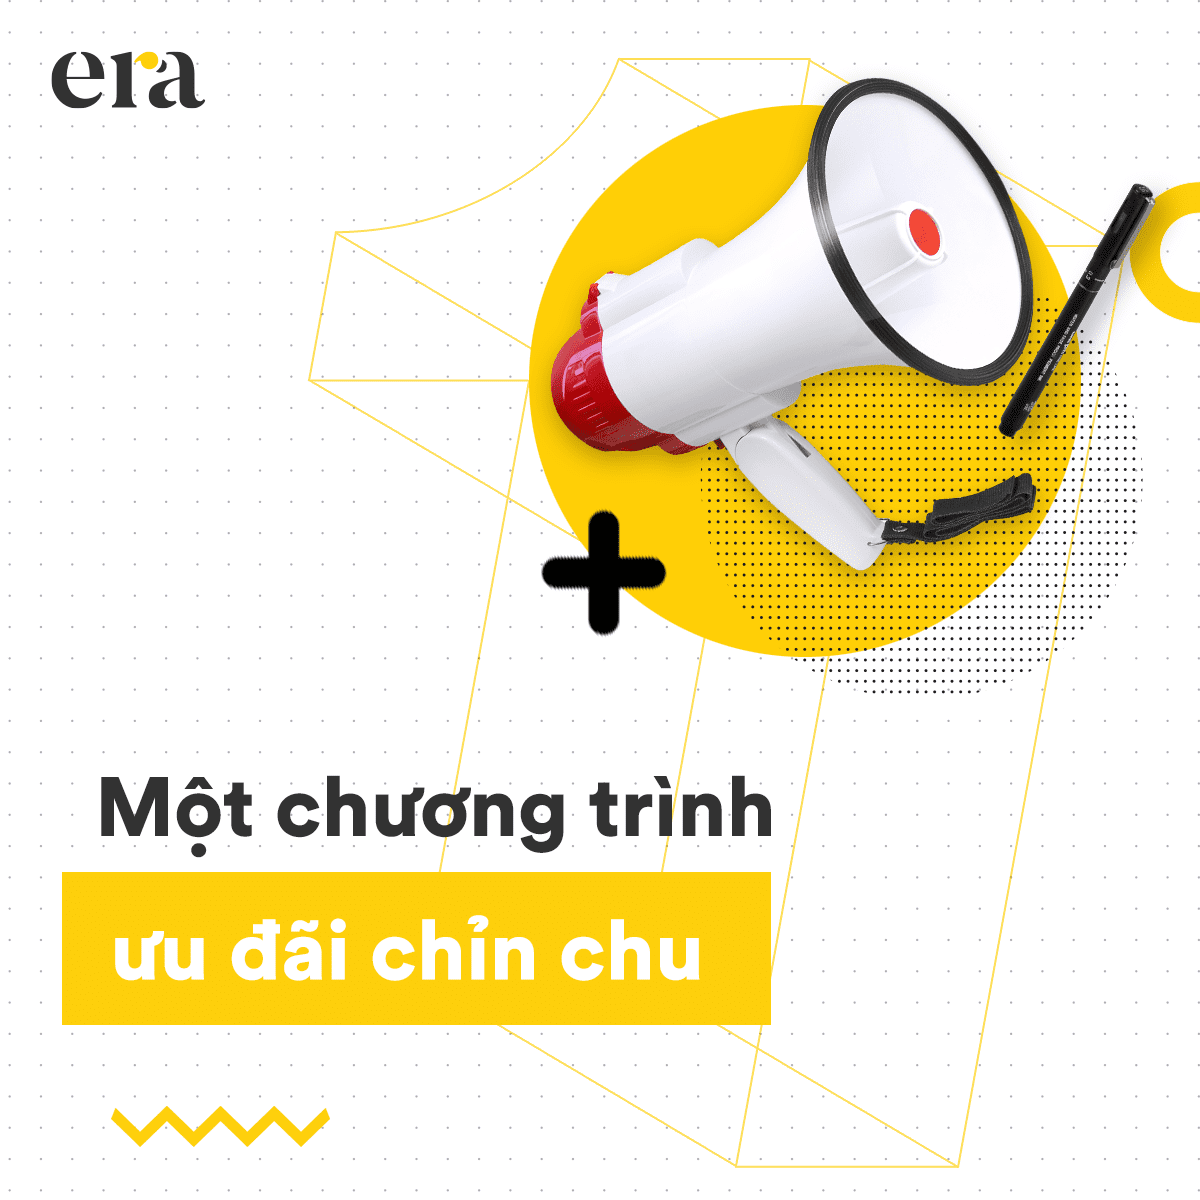 ý tưởng marketing 8/3